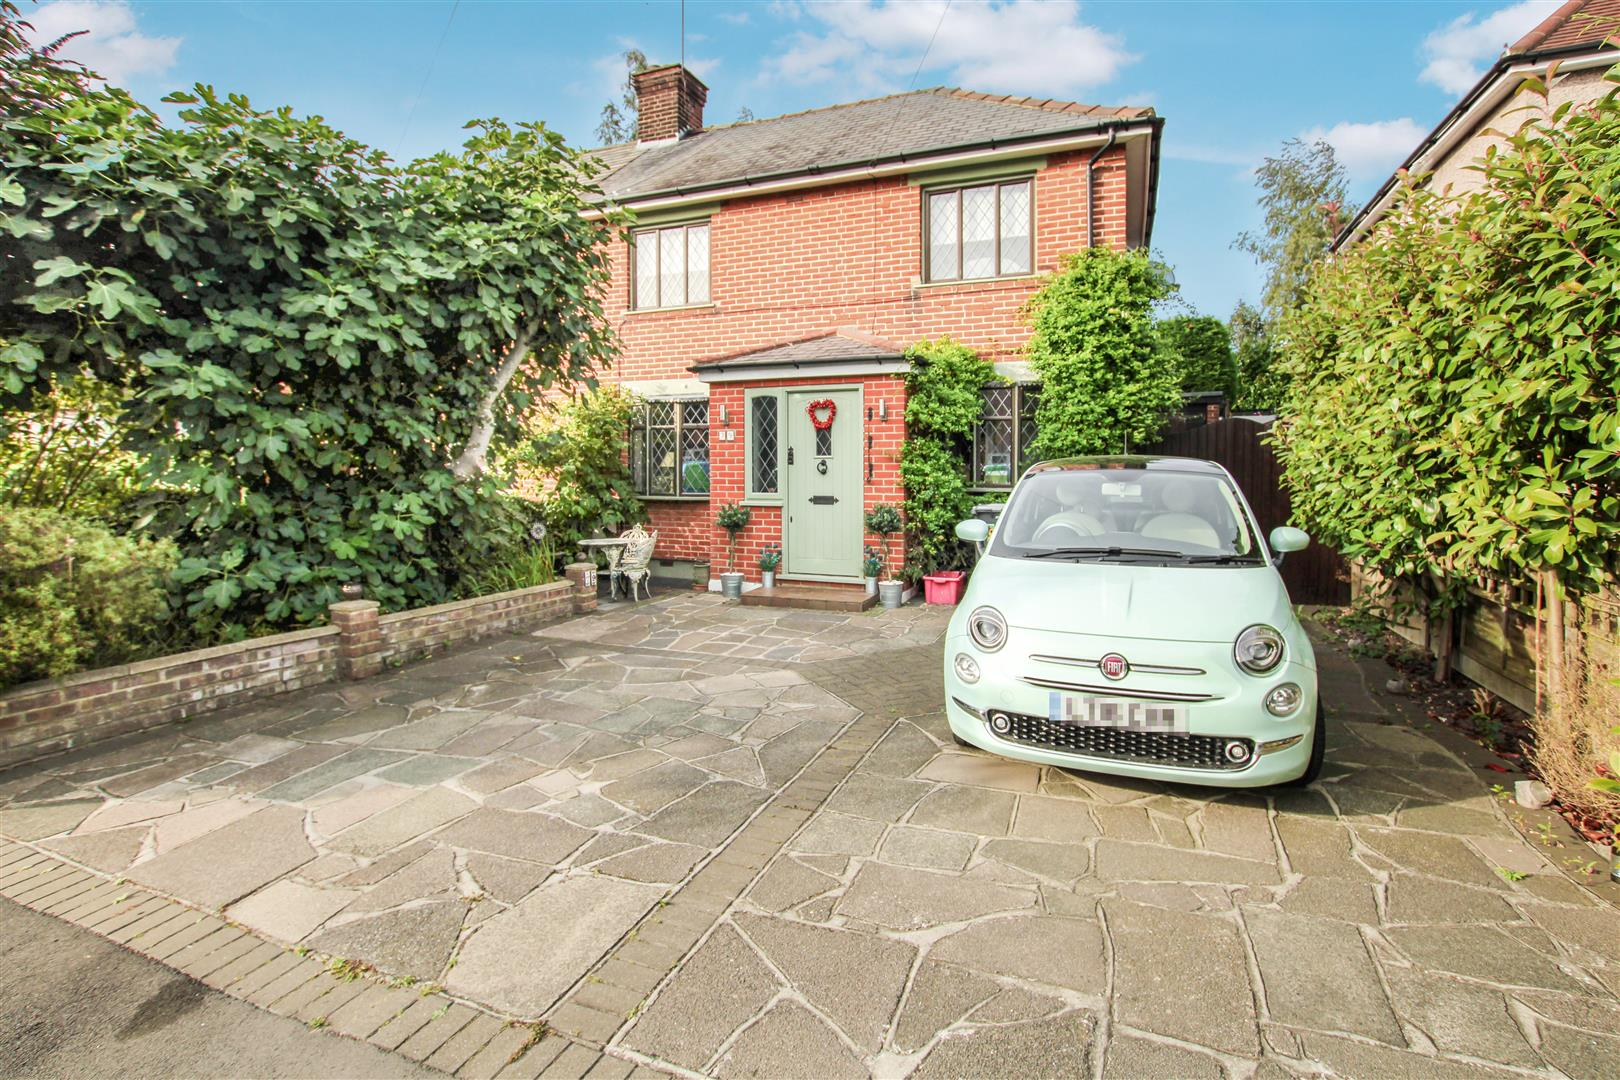 Costead Manor Road, Brentwood